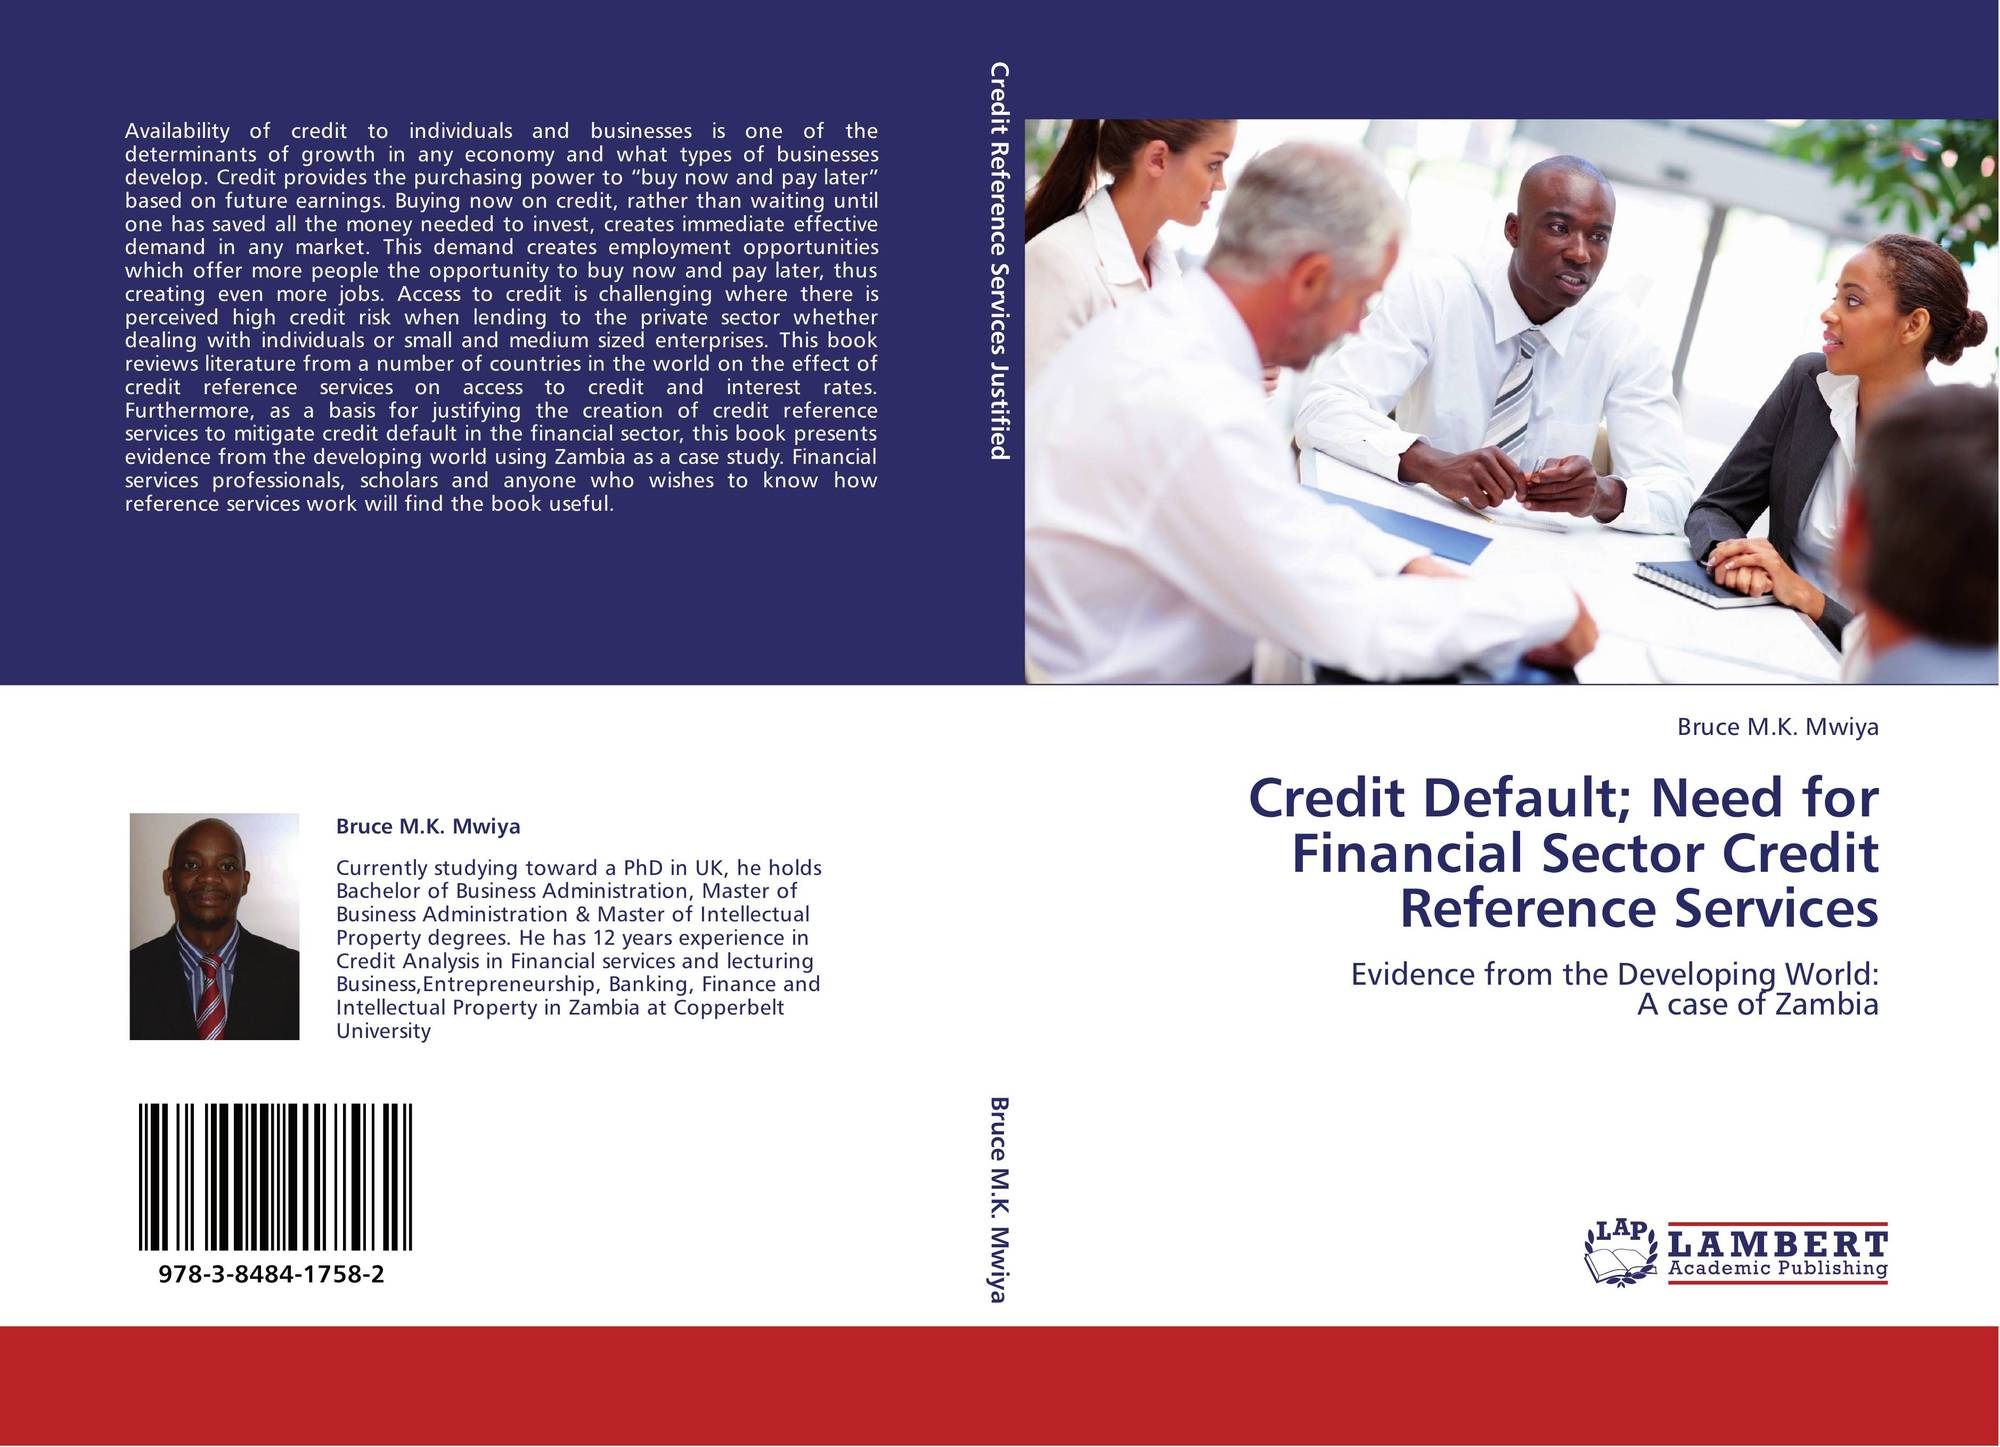 effects on credit accessibility of smes from microfinance economics essay The effect of microfinance institution 423 credit accessibility of smes microfinance in that it involves providing credit to the poor, but microfinance.